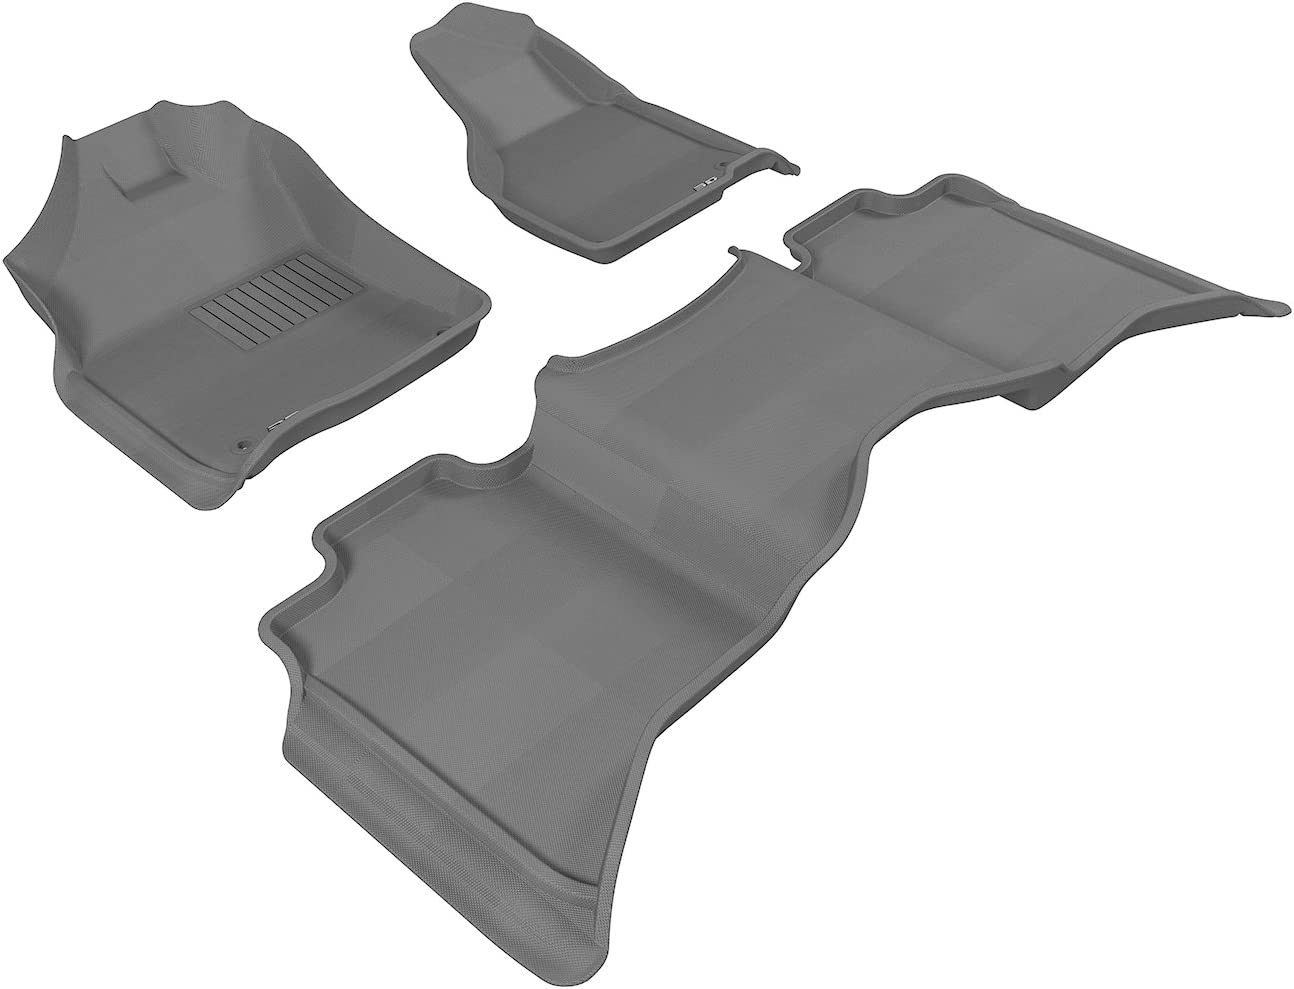 3D MAXpider Complete Set Custom Fit All-Weather Floor Mat for Select Dodge Models - Kagu Rubber (Gray) 61To-HXqszL